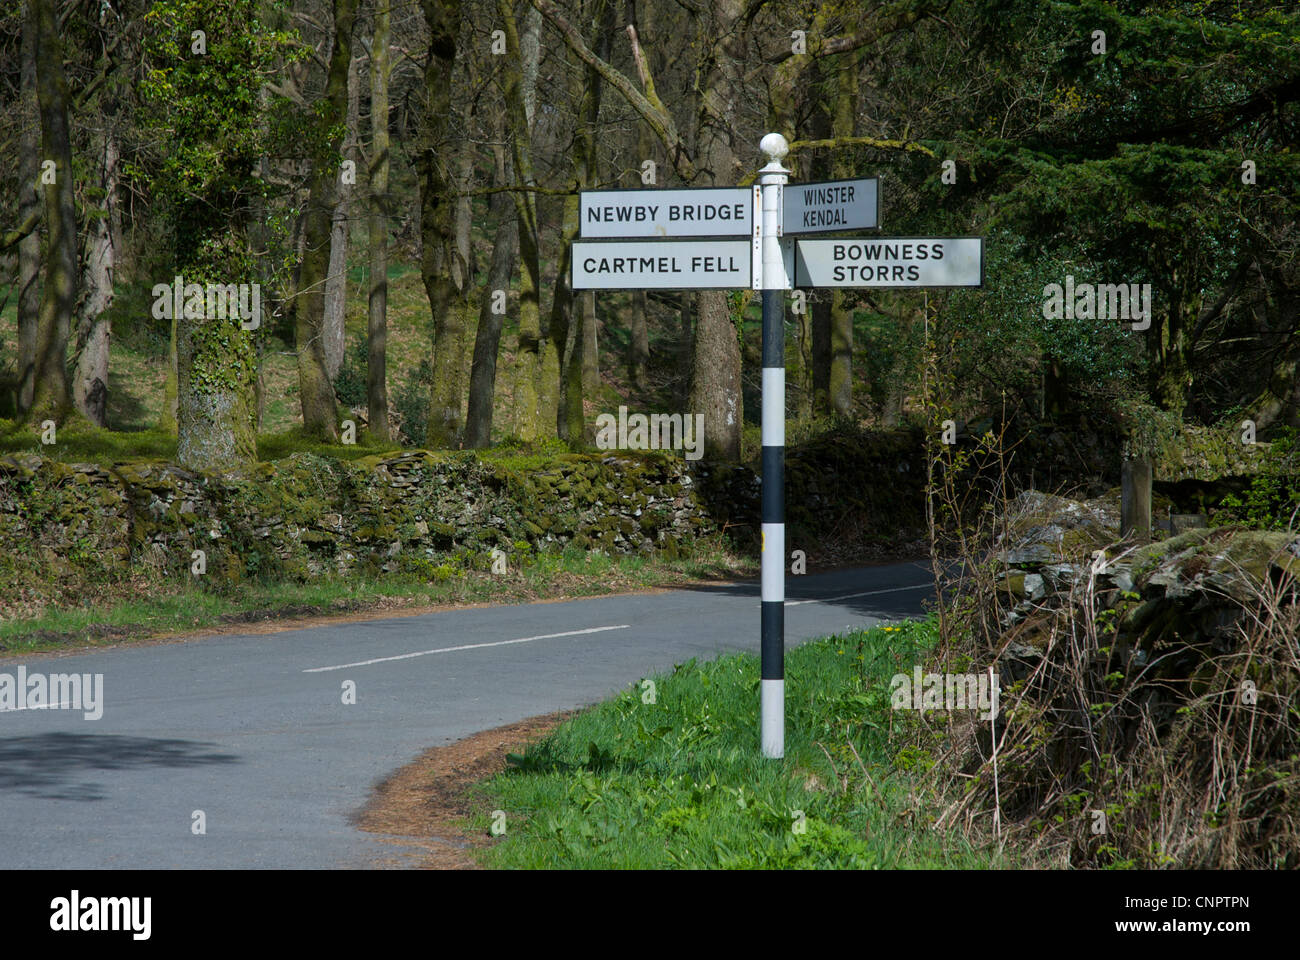 Old-fashioned signpost at a road junction, Ludderburn, Lake District National Park, Cumbria, England uk - Stock Image